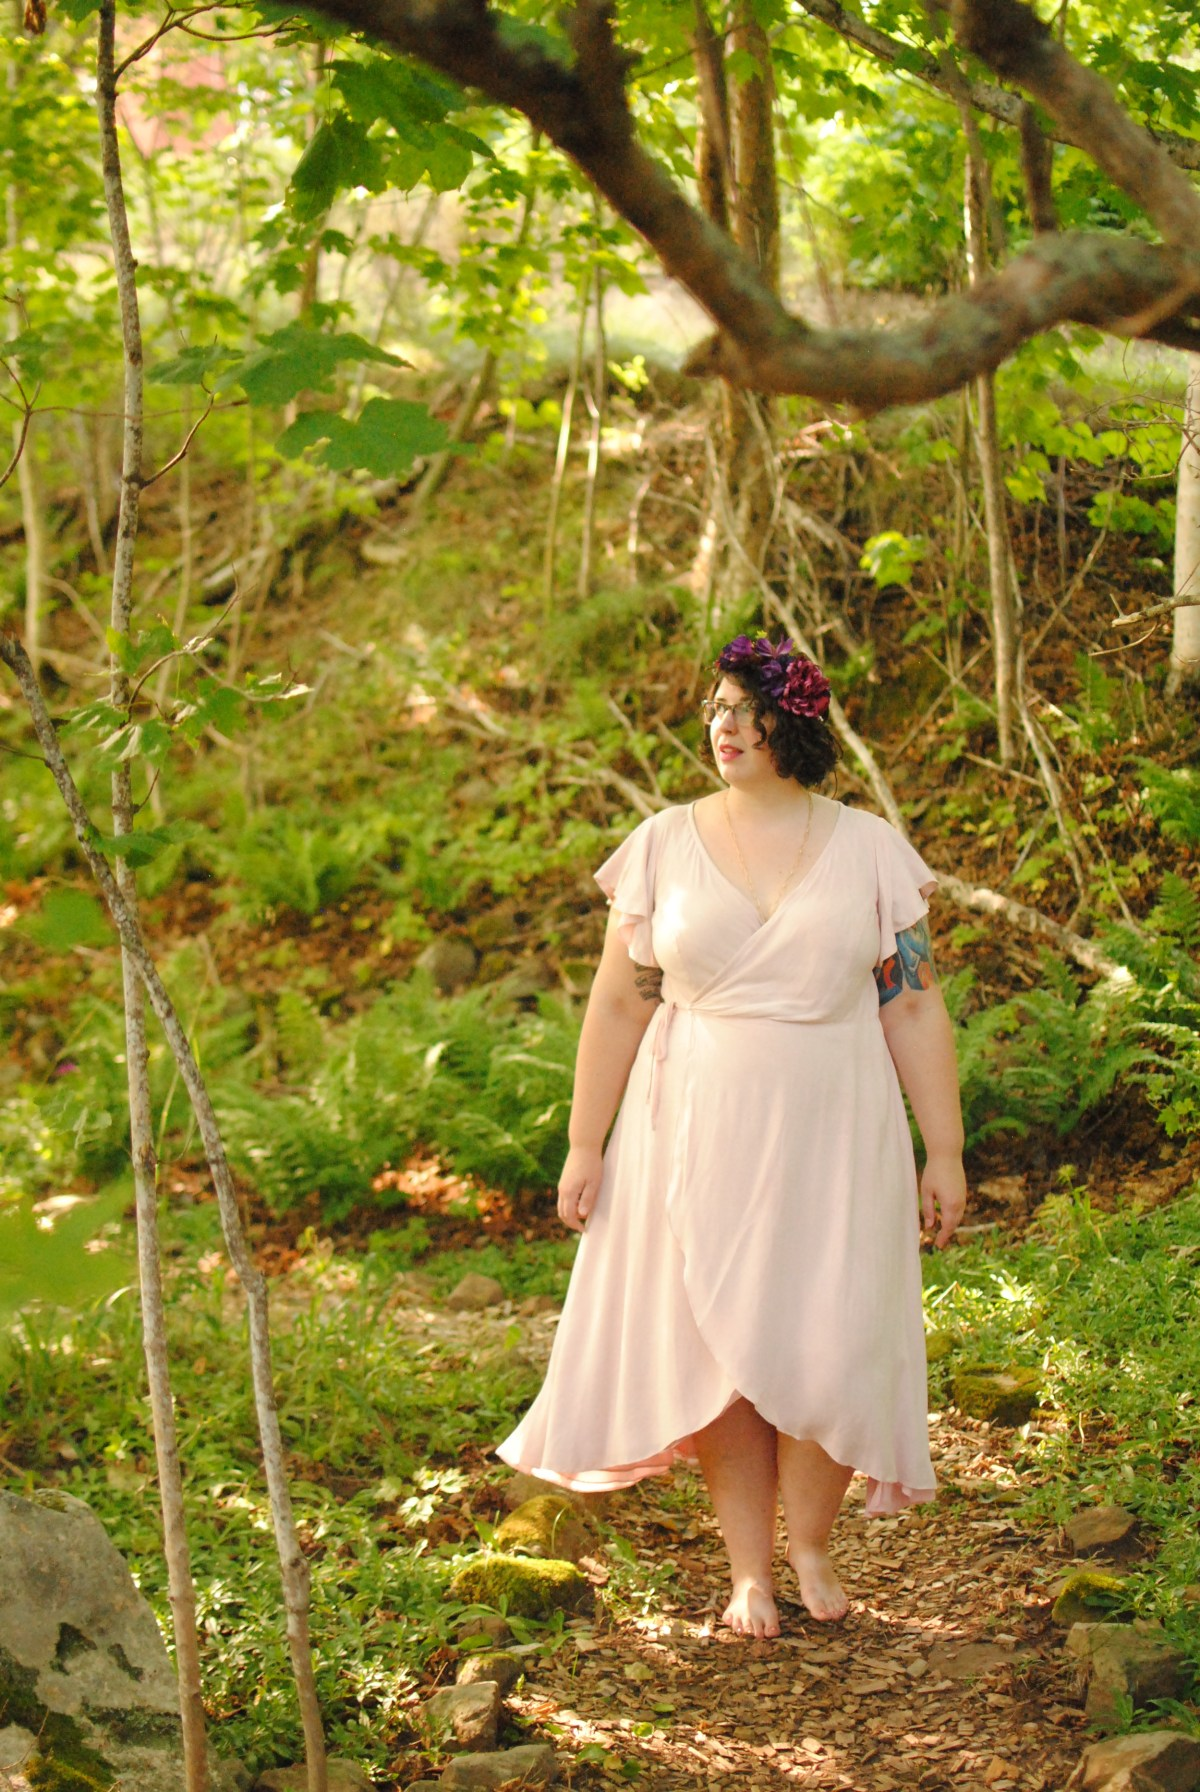 Shannon, a fat, White person, standing in the woods wearing a pale pink wrap dress and a flower crown. The tone of the image is warm and summery.